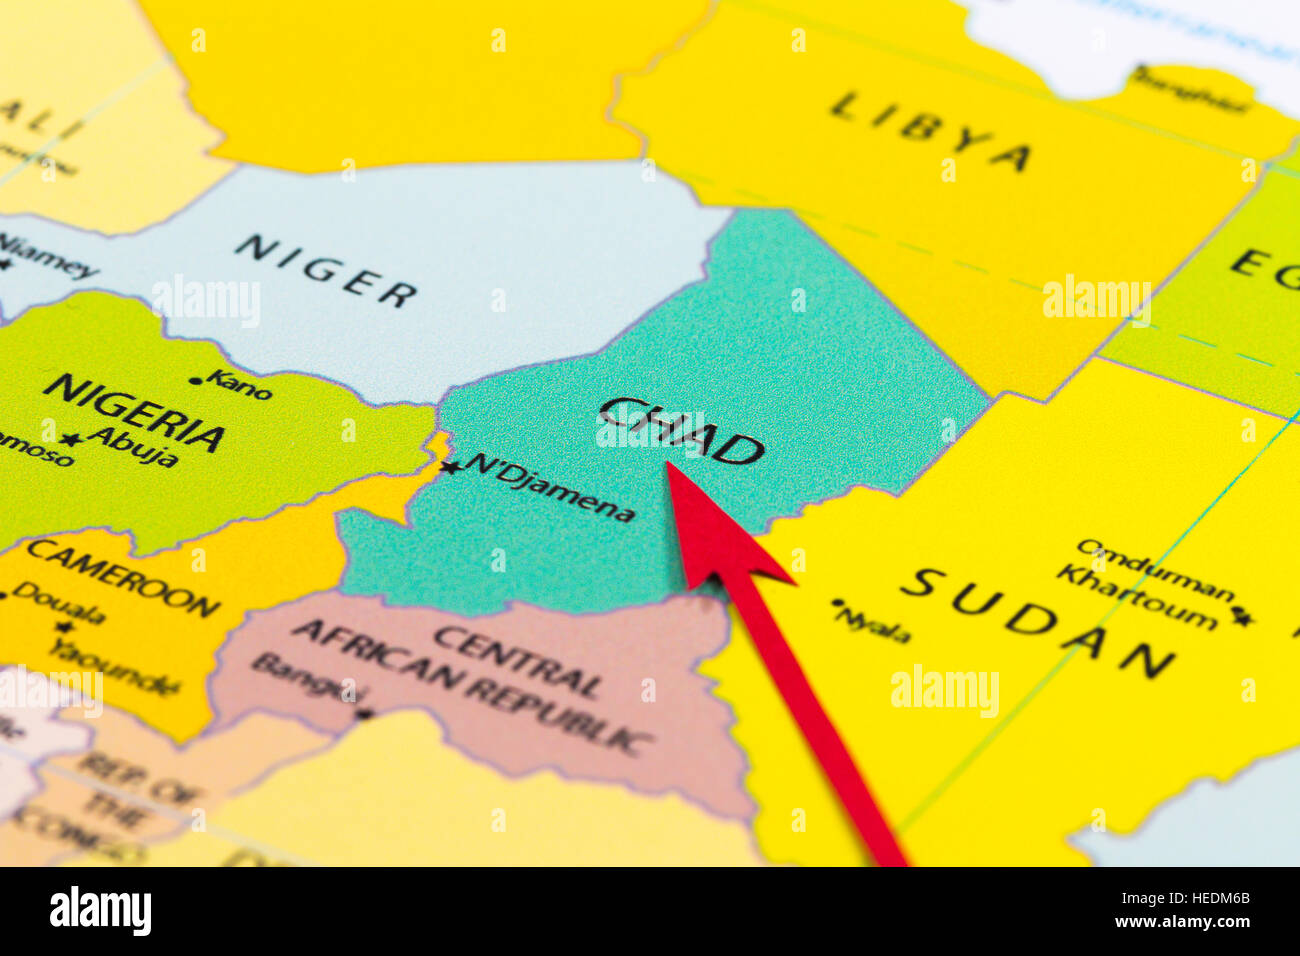 Map Of Chad Stockfotos & Map Of Chad Bilder - Alamy